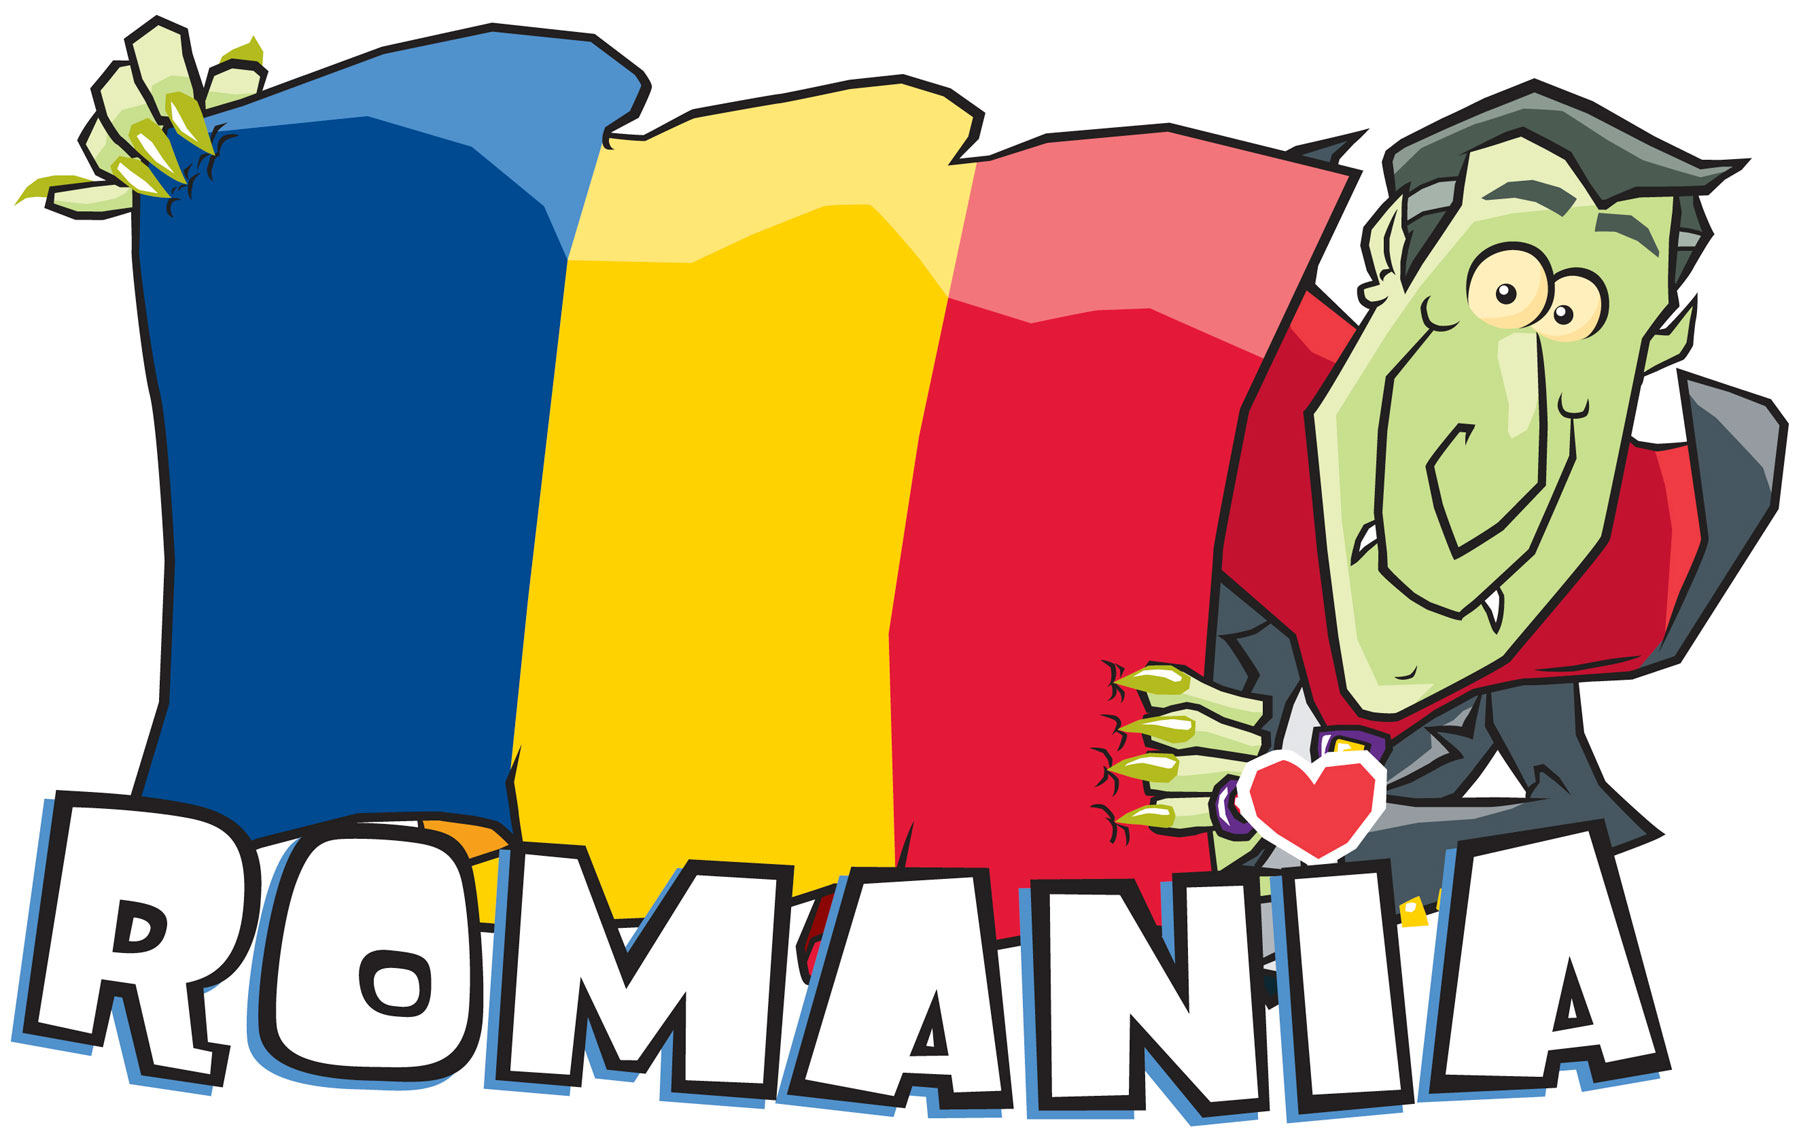 Romania-Sticker-web.jpg